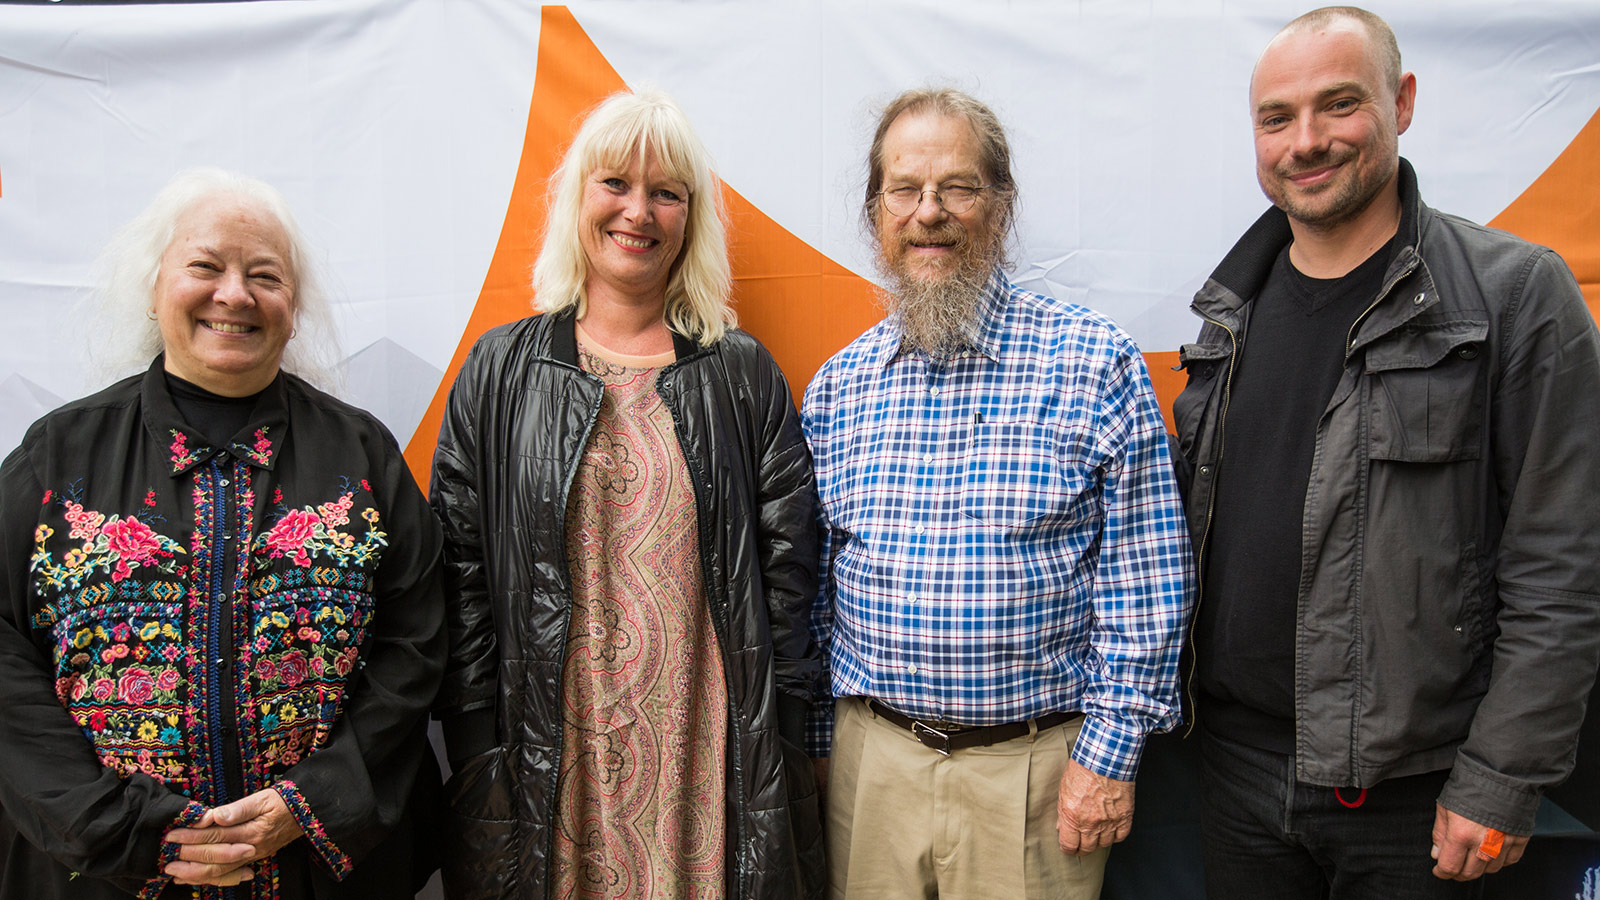 Left to right: Helen Meyer; Signe Lopdrup, CEO Roskilde Festival Group; John Meyer; Bertel Baagøe, Head of Production, Roskilde Festival